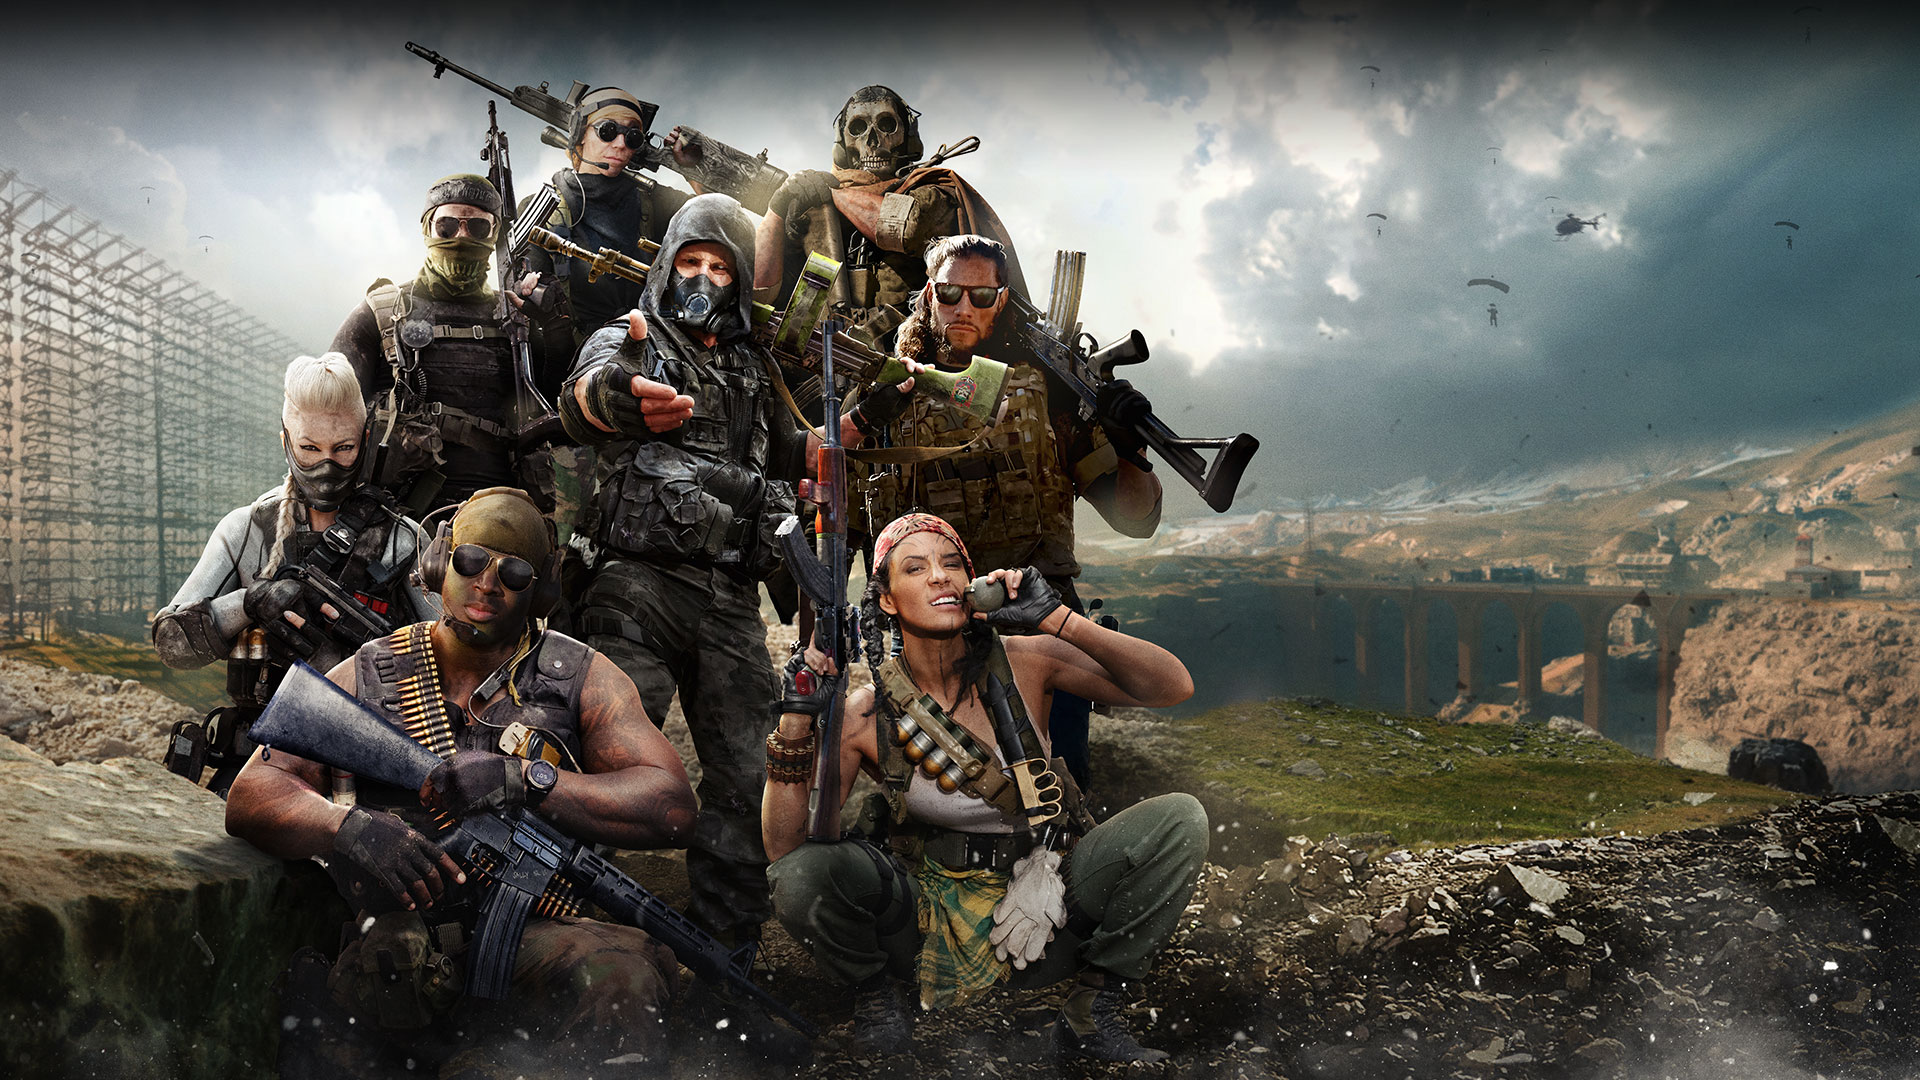 Eight characters all in different outfits wielding grenades, pistols, and machine guns pose in front a battle for a giant bridge.